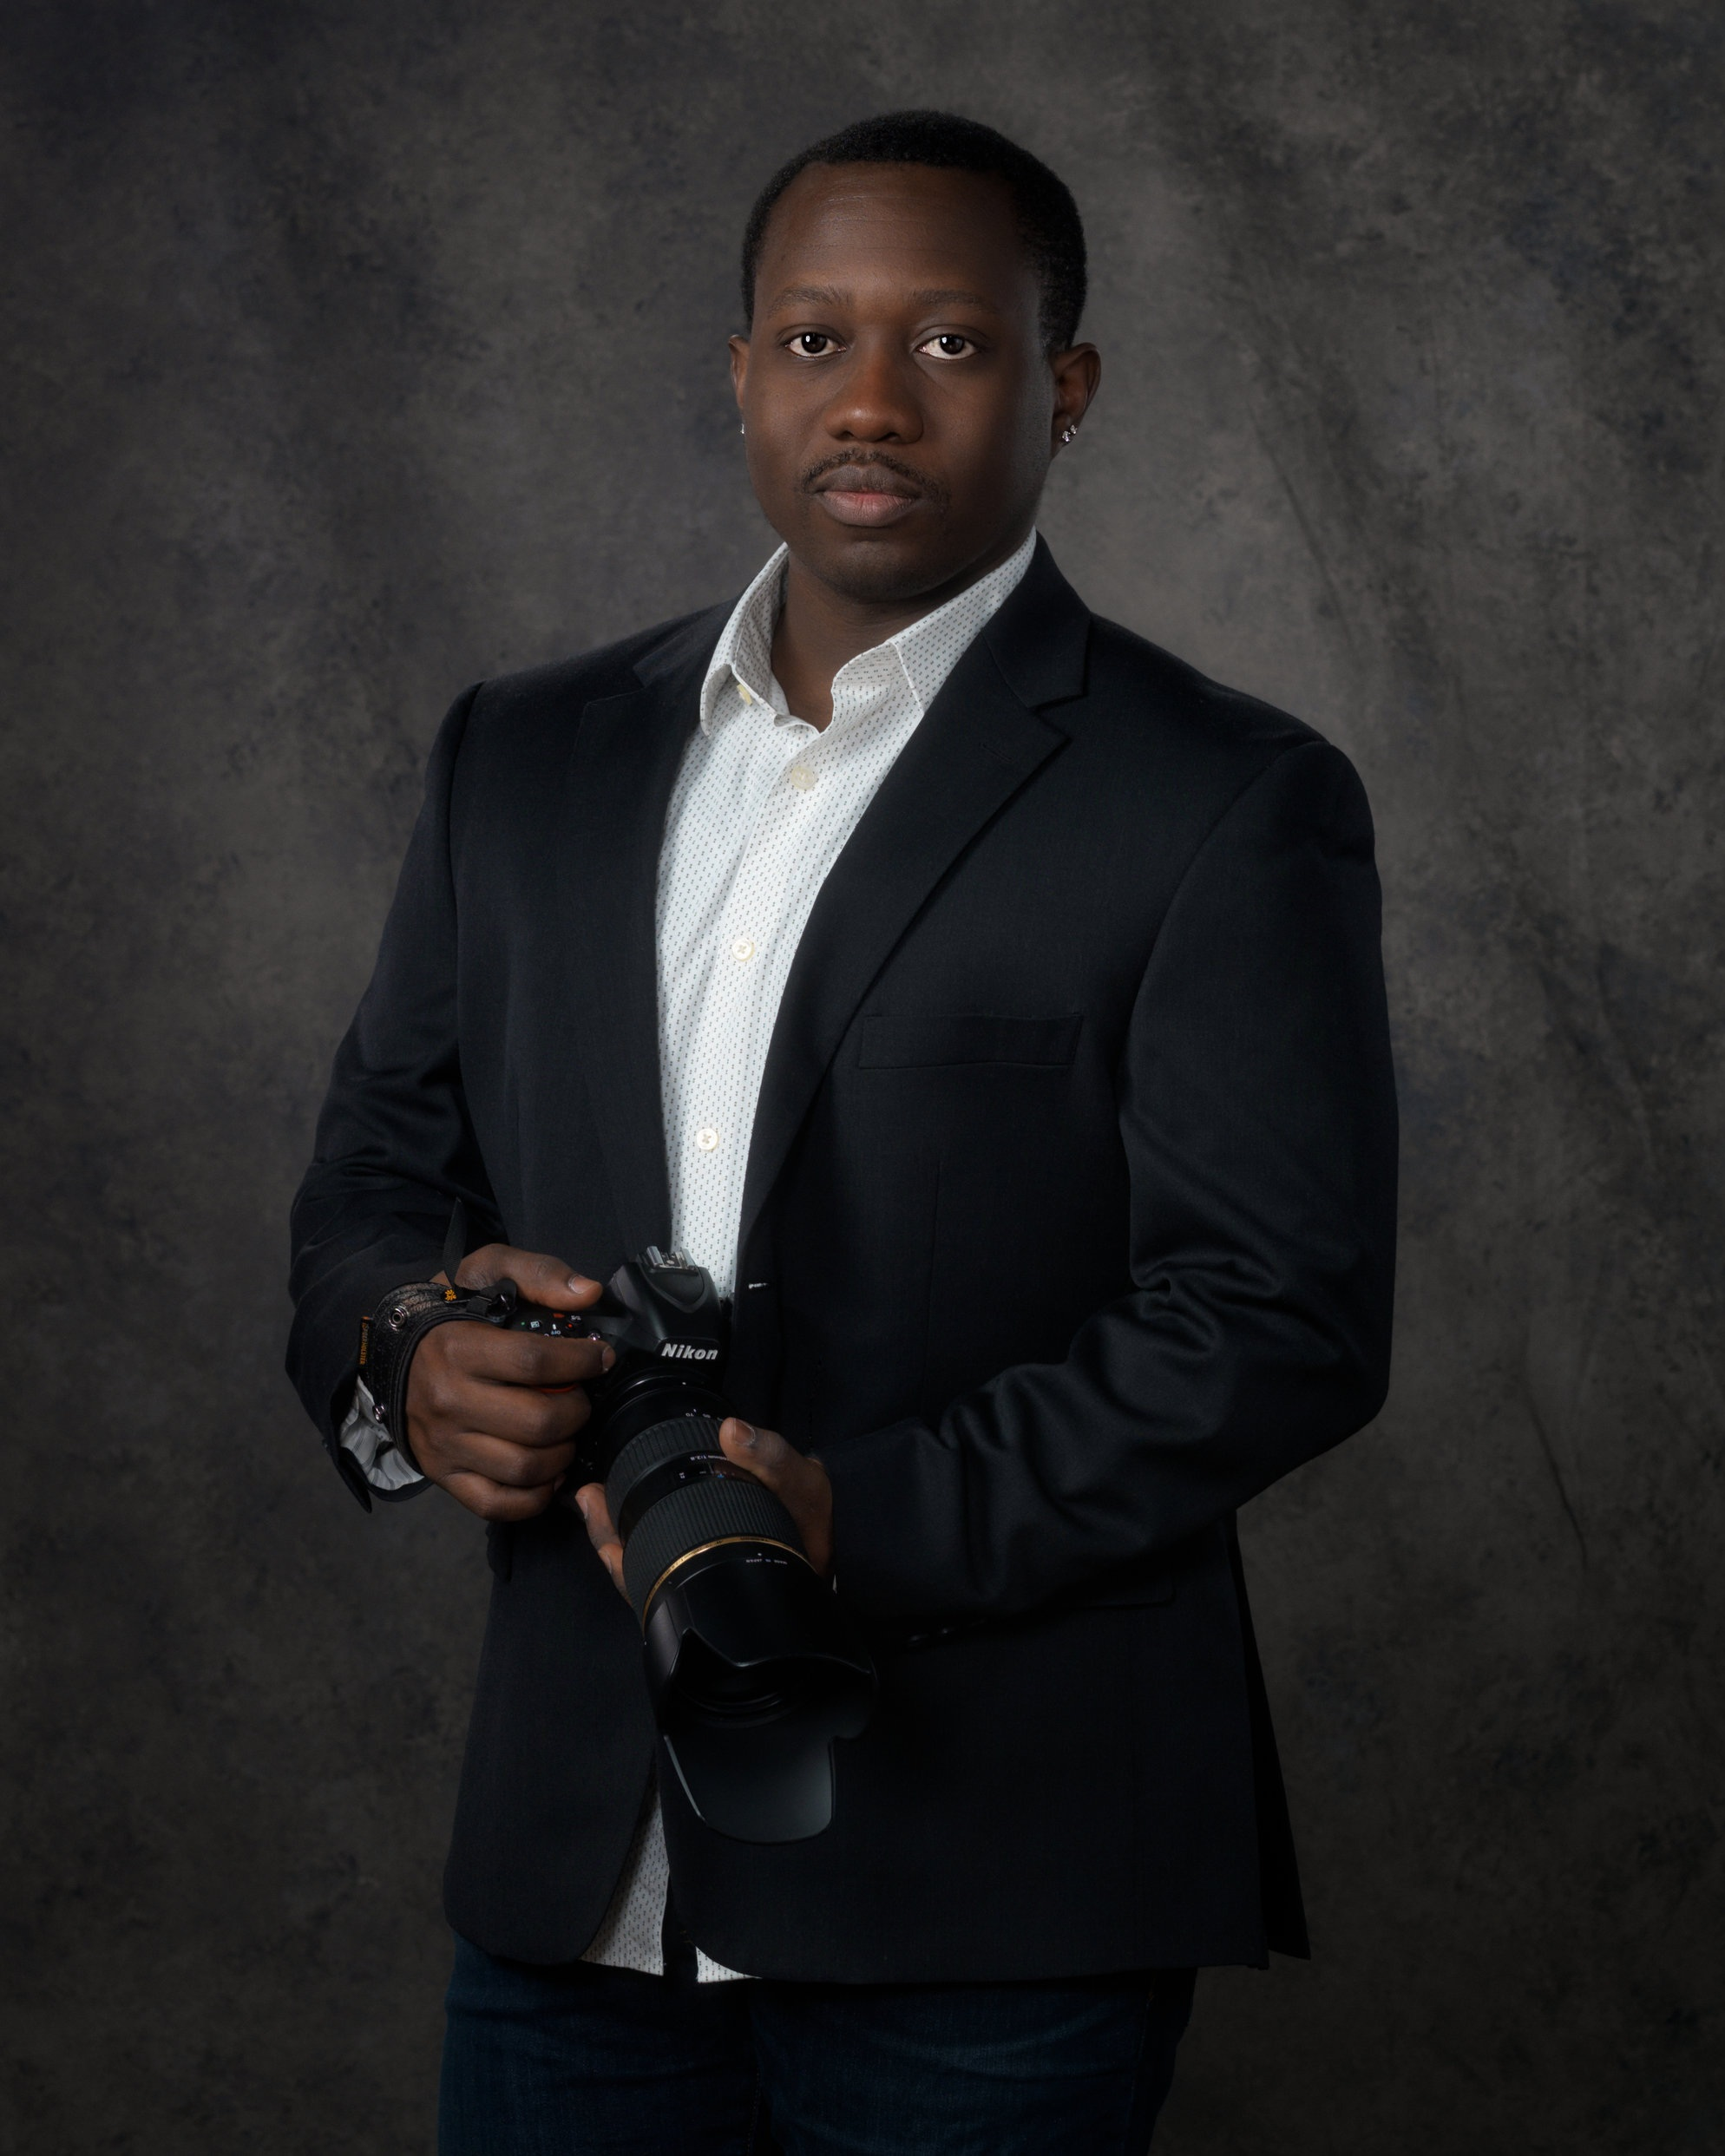 Taye Wilkinson is a portrait photographer. He served in the United States Navy for 12 years. He has been interested in photography since the age of 15. He is an uncle, brother, and owner of a black lab named, Brix.